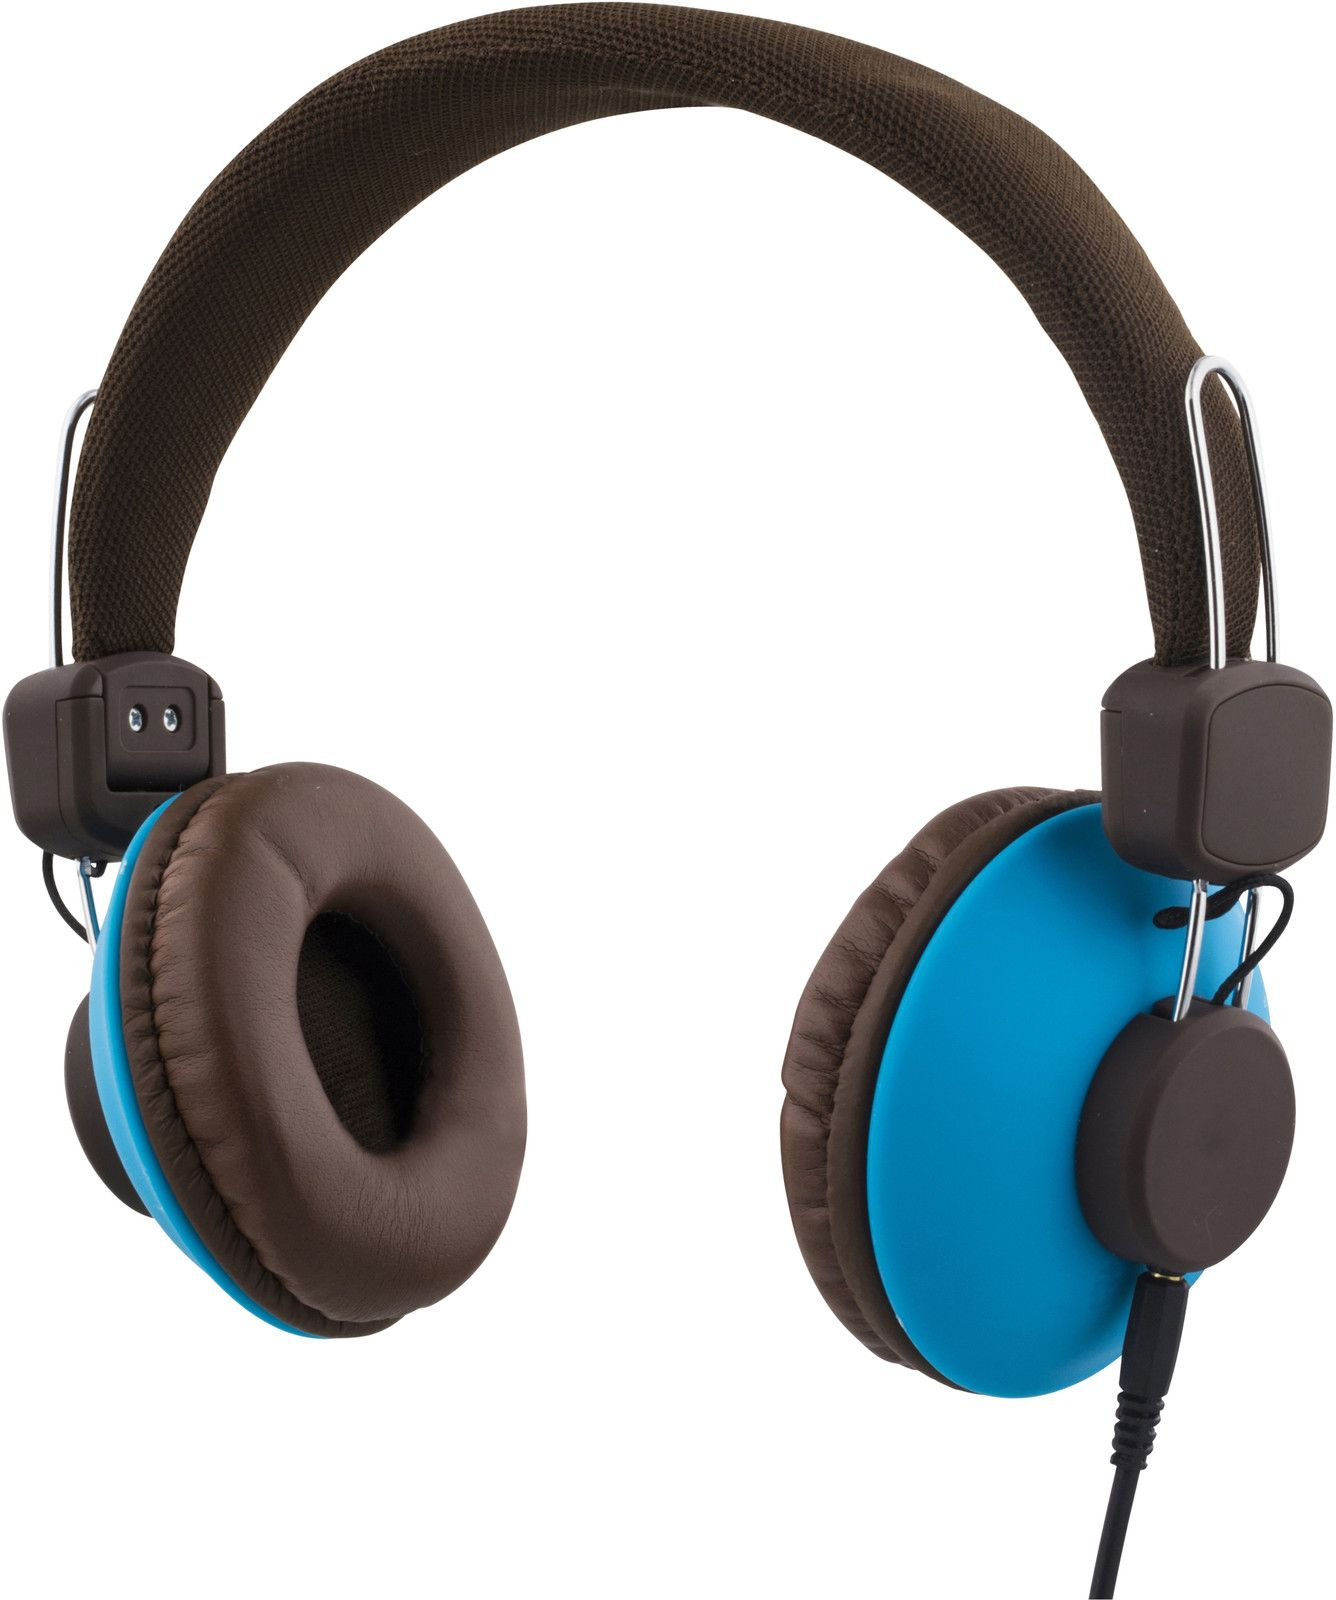 Streetz Headset with Cable - Brun/blå